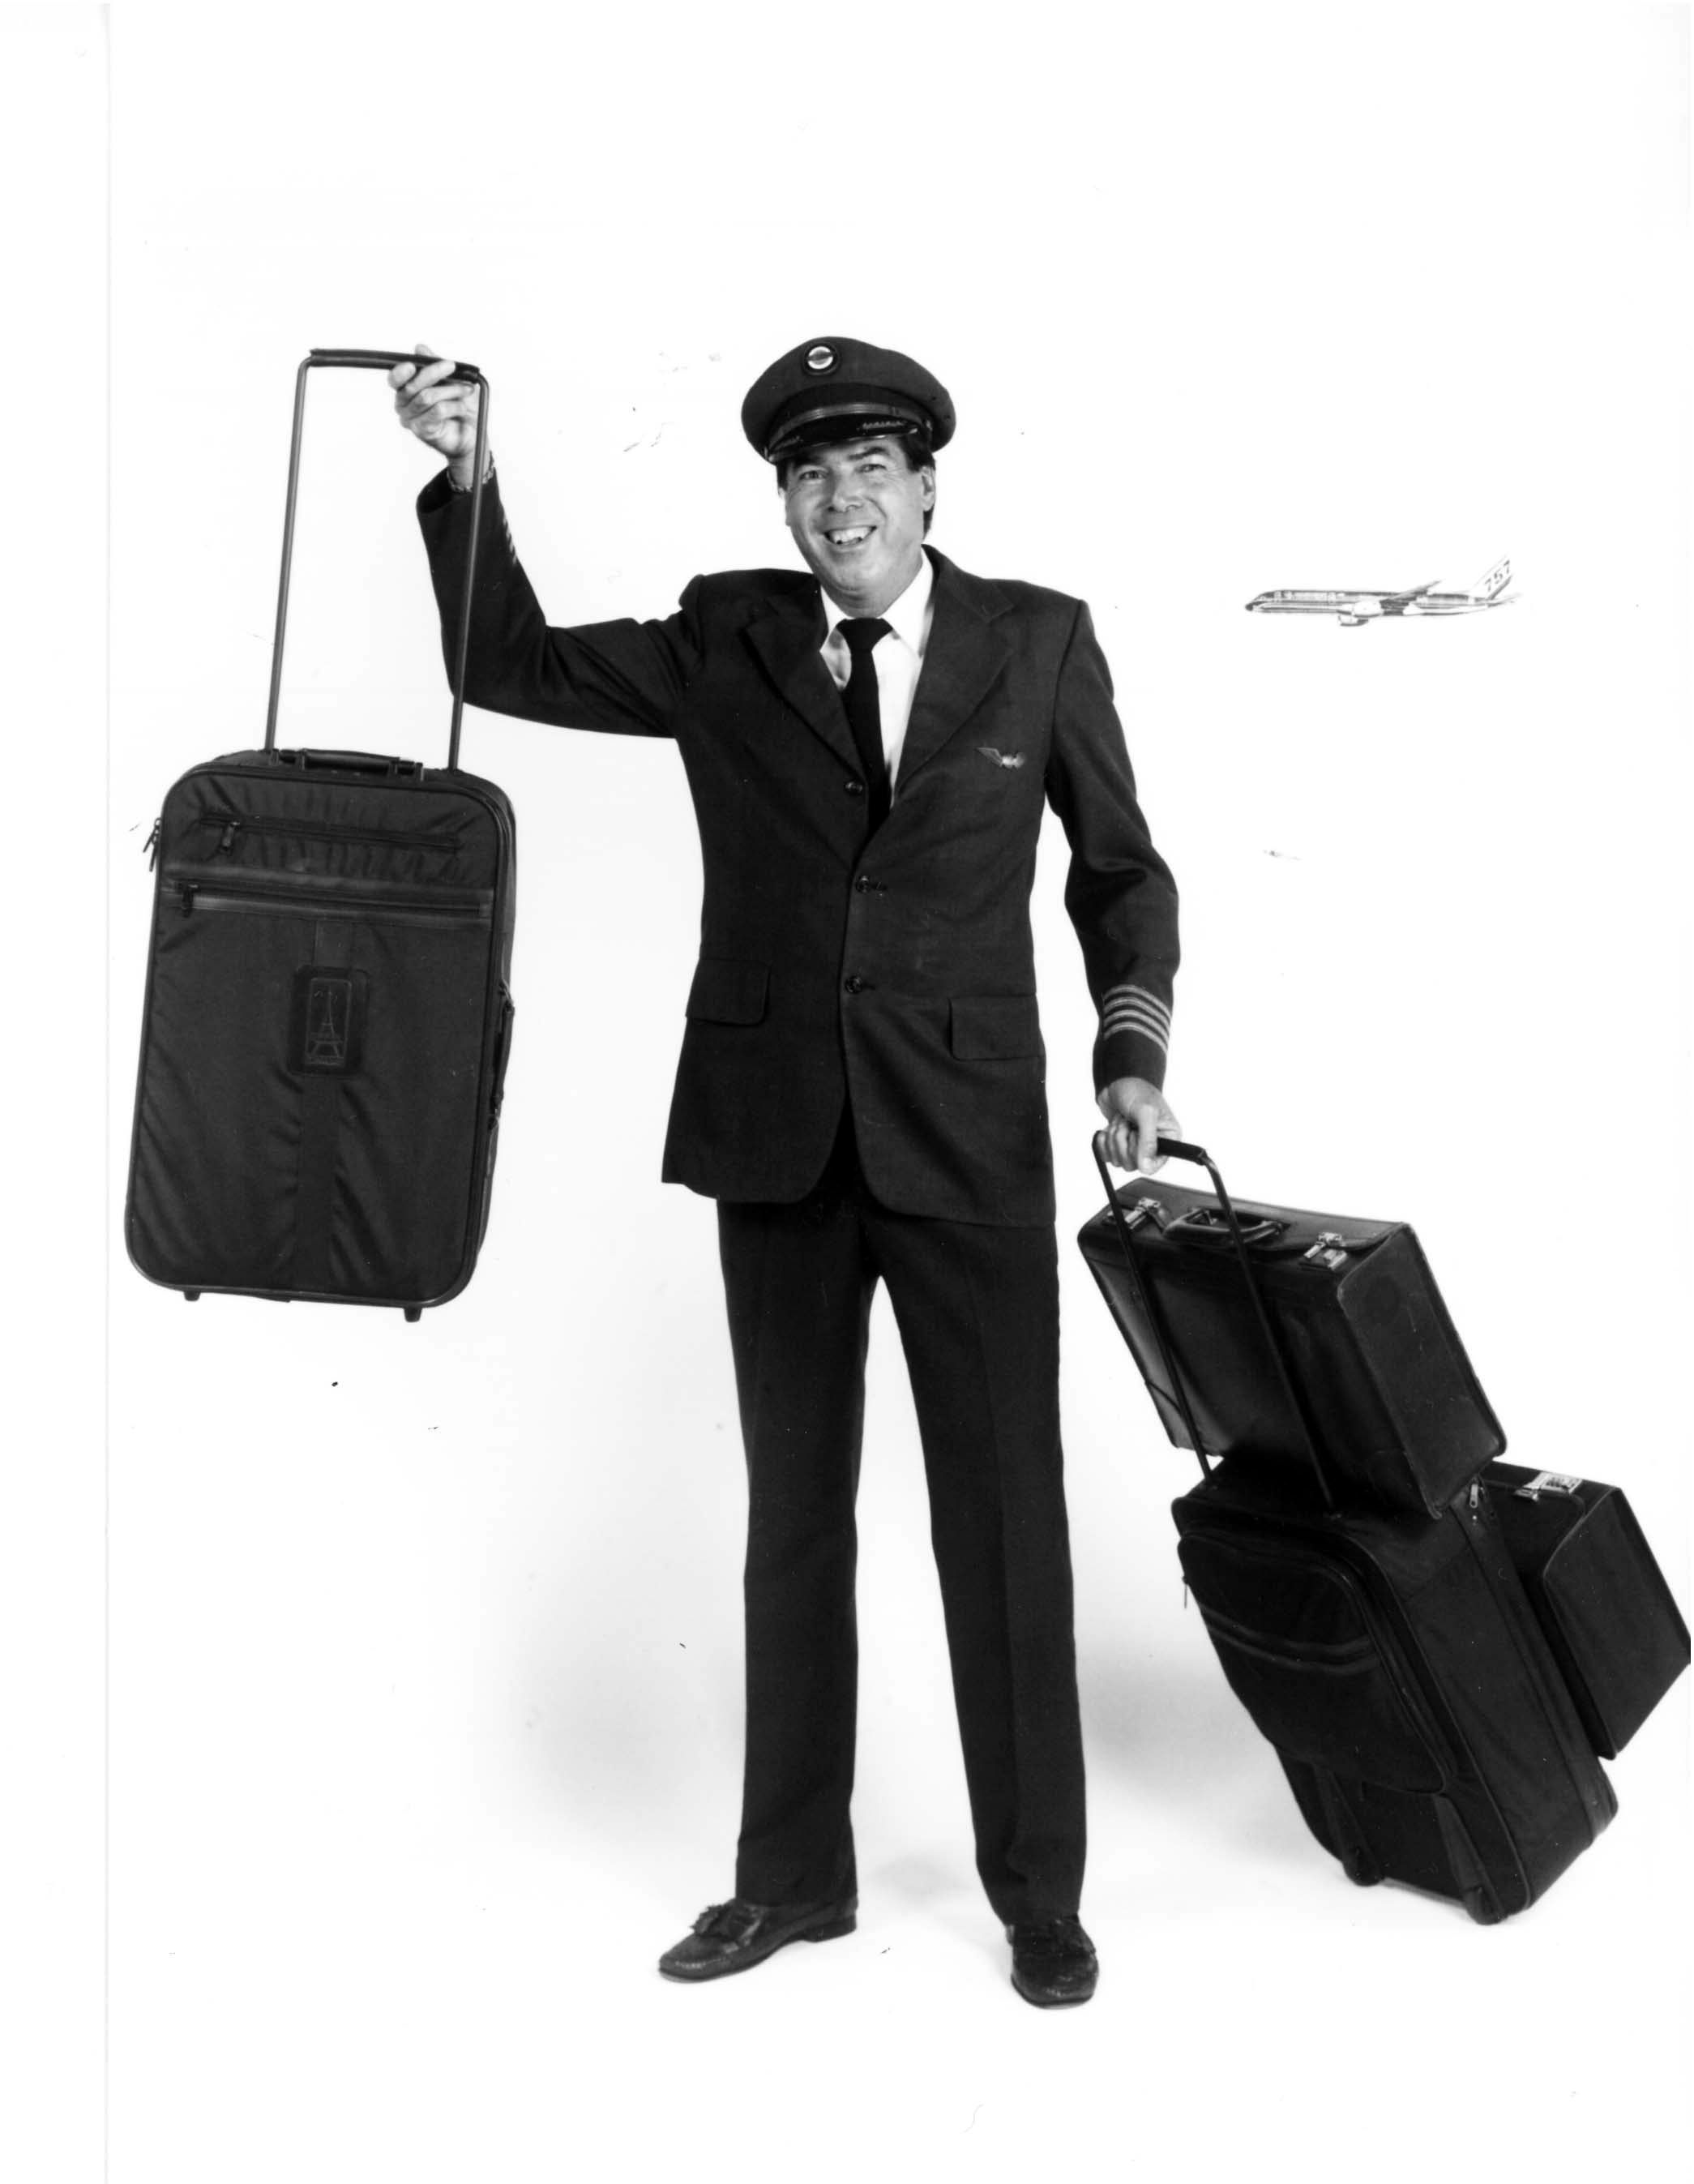 Robert Plath and Rollaboard Luggage | Modern man, Flight crew, Luggage